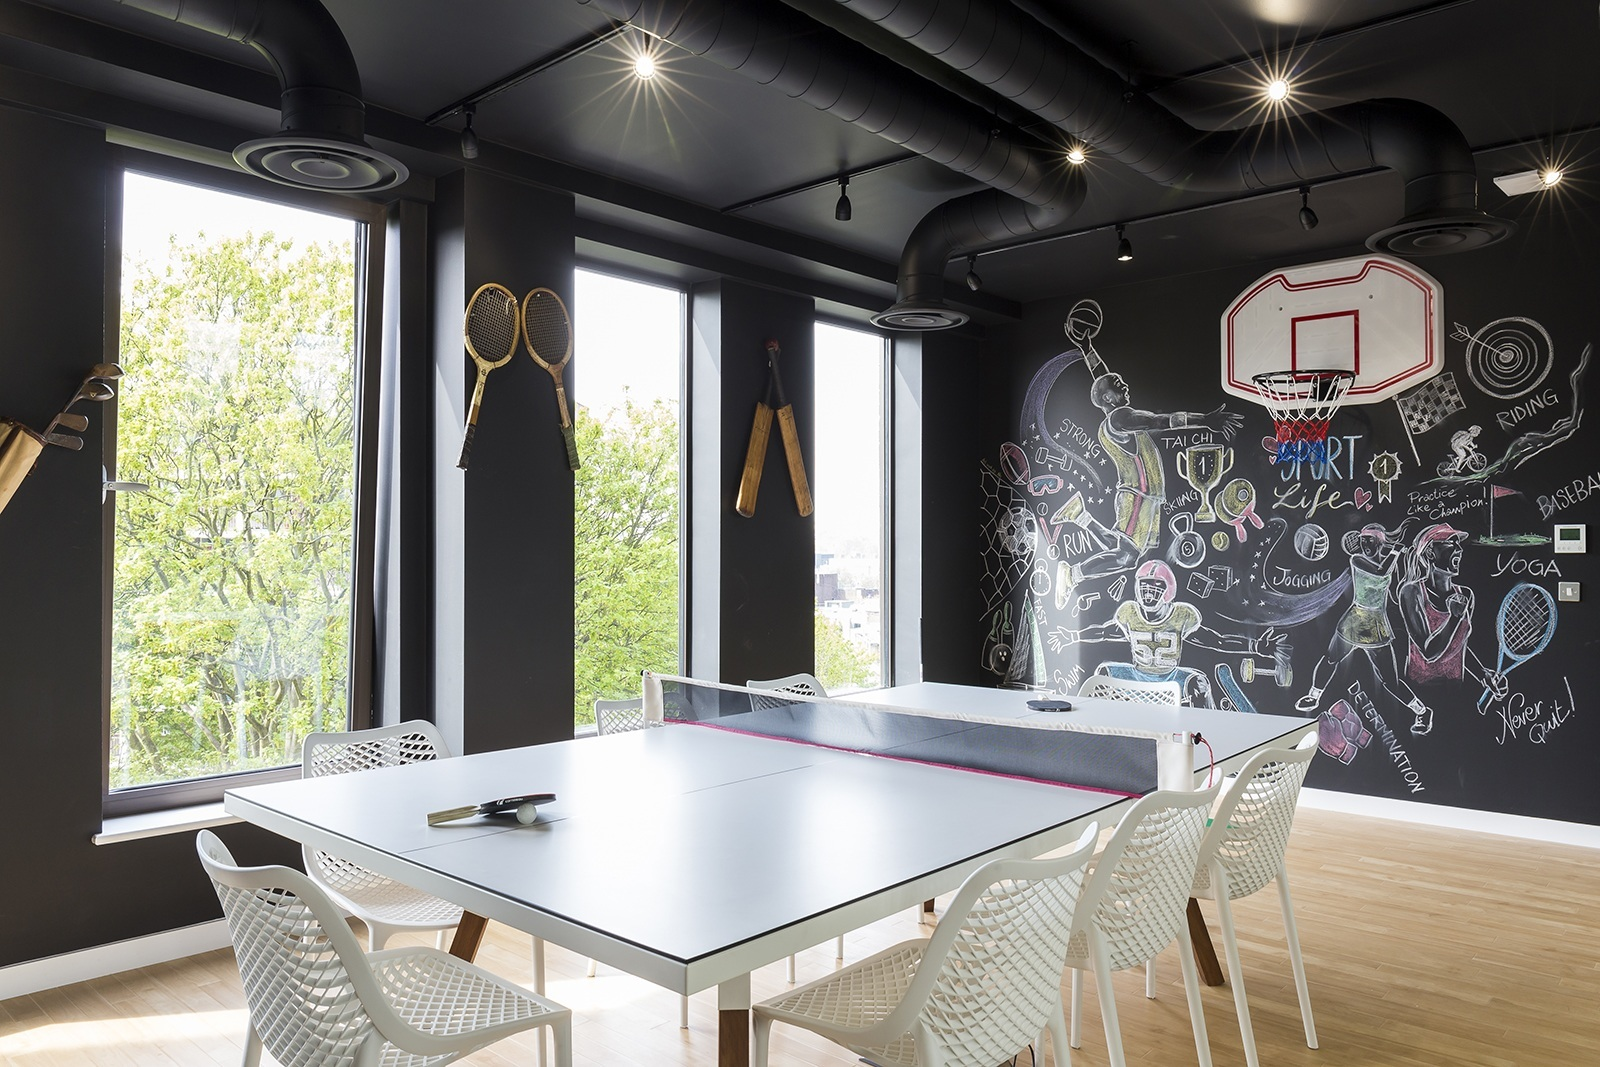 Houzz Home Design Ideas: A Tour Of Houzz's New European Headquarters